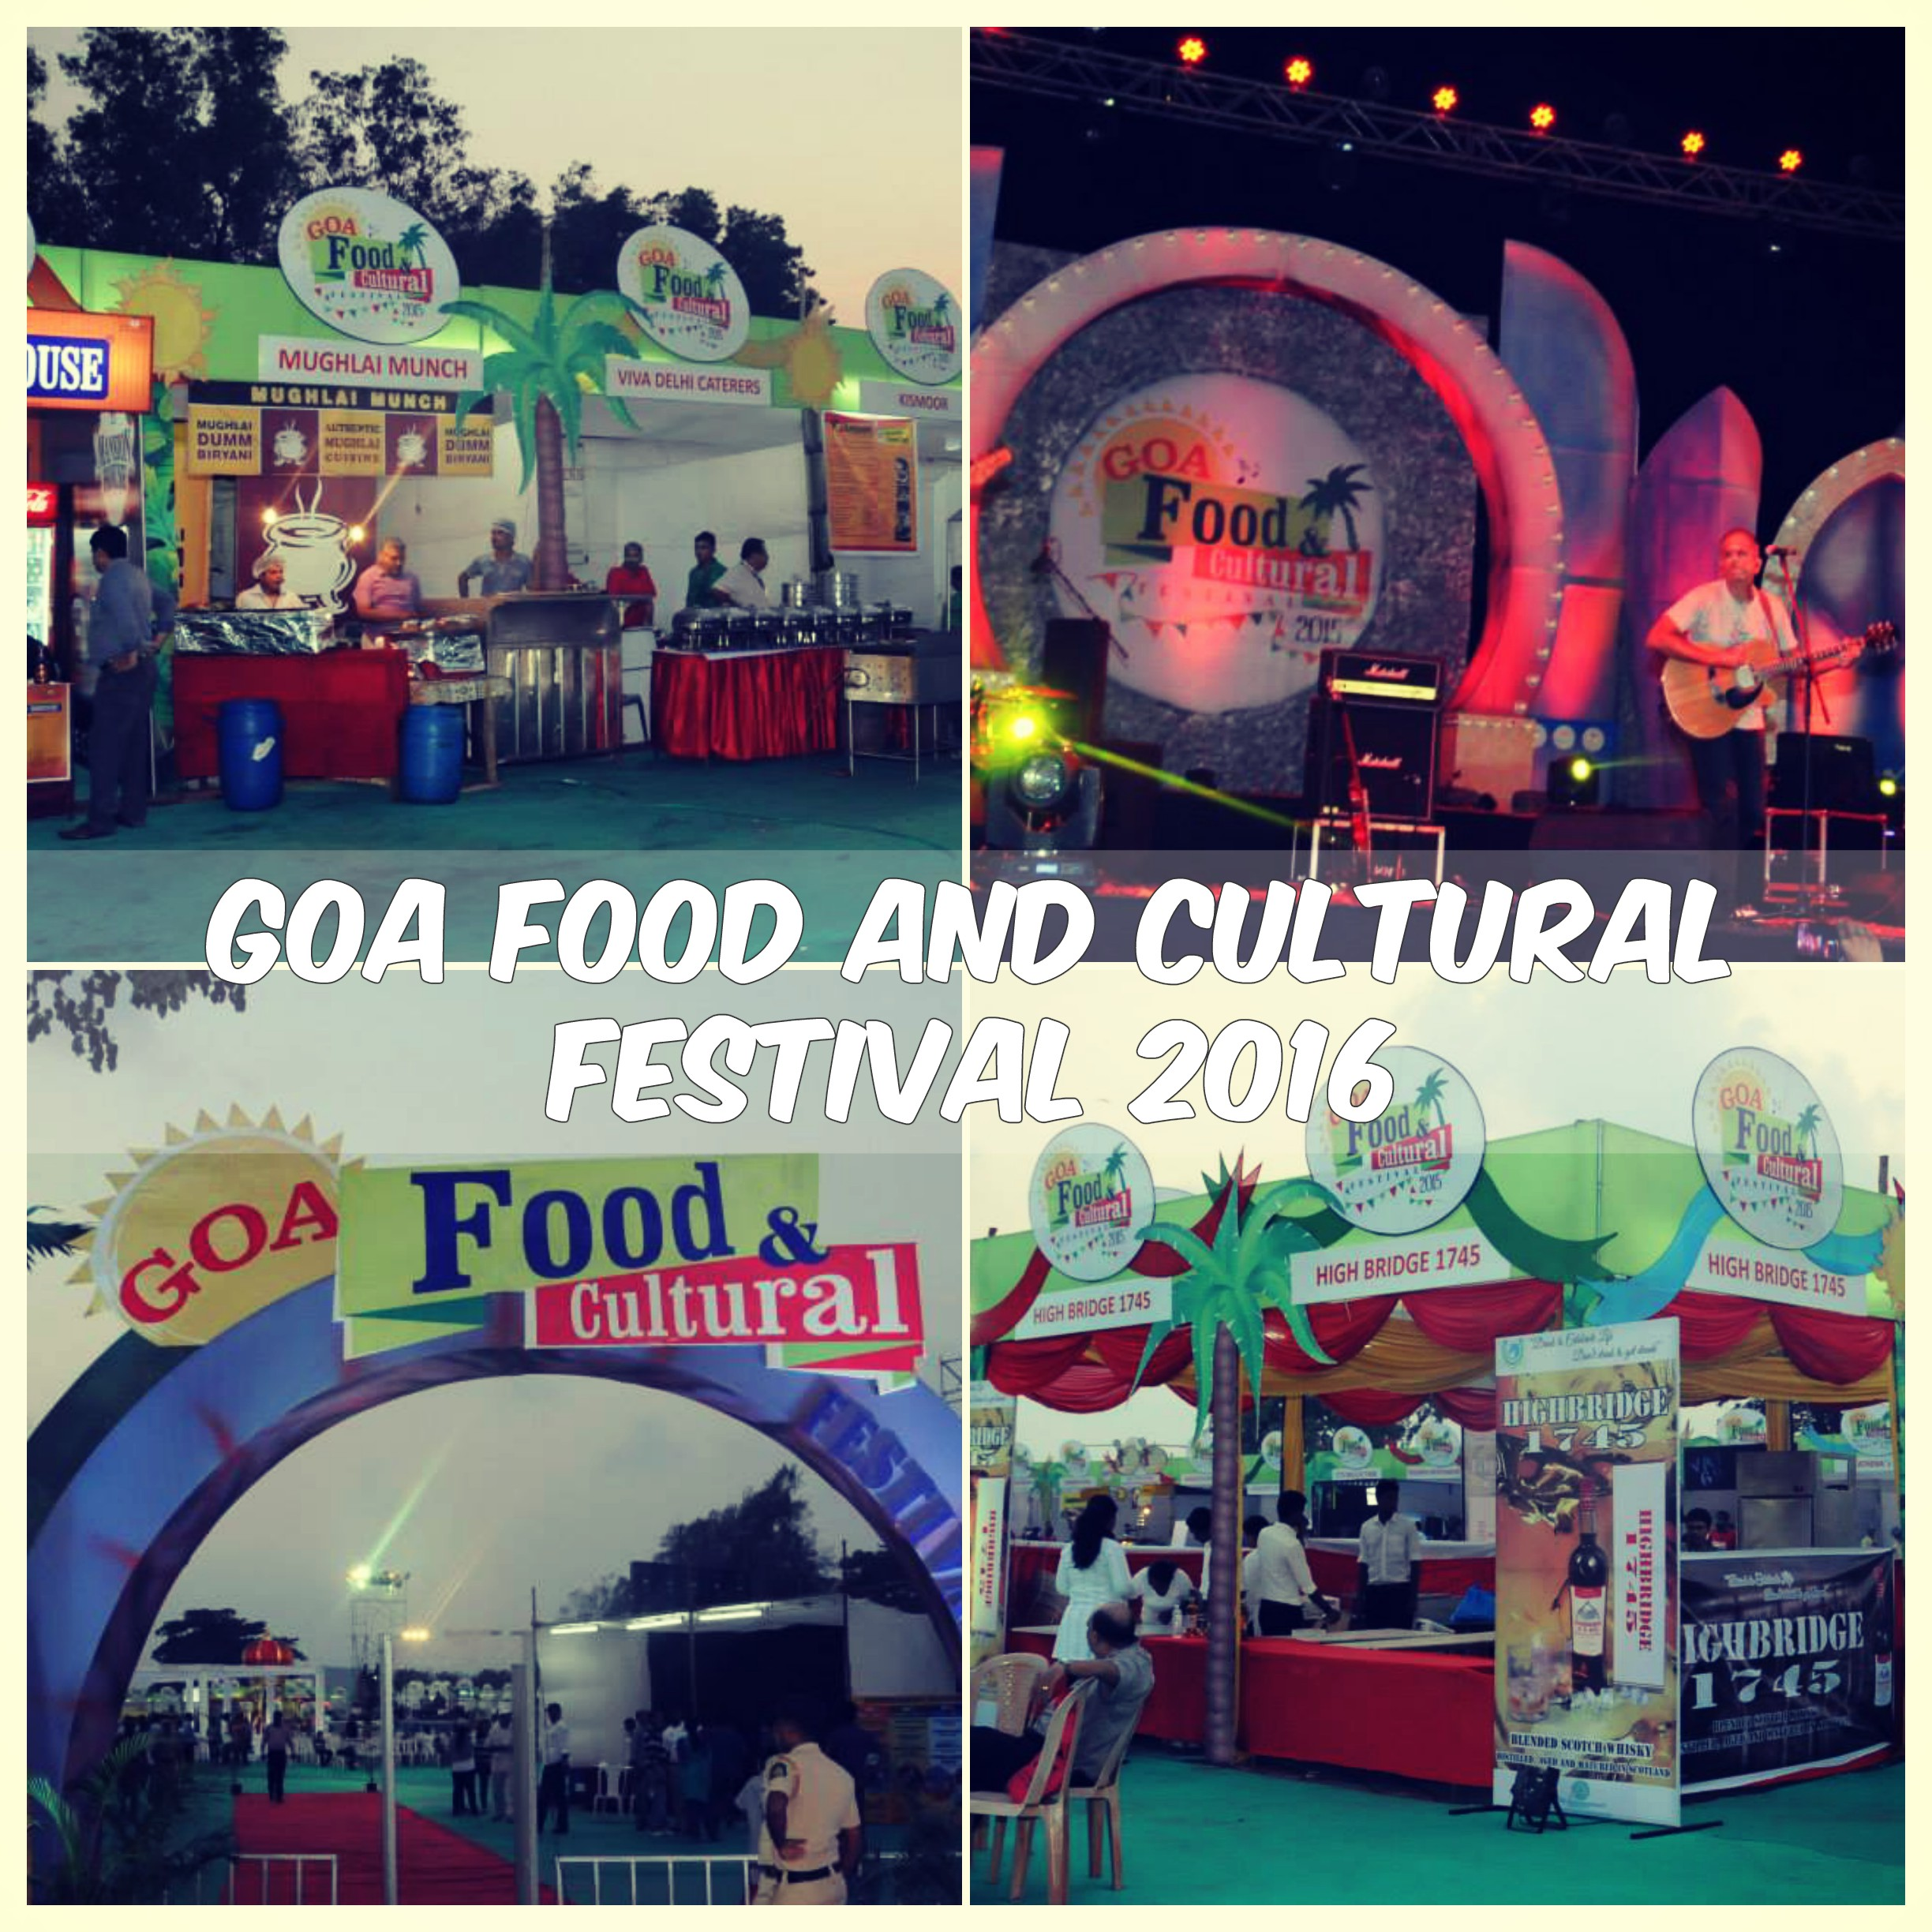 Goa-Food-and-Cultural-Festival-2016